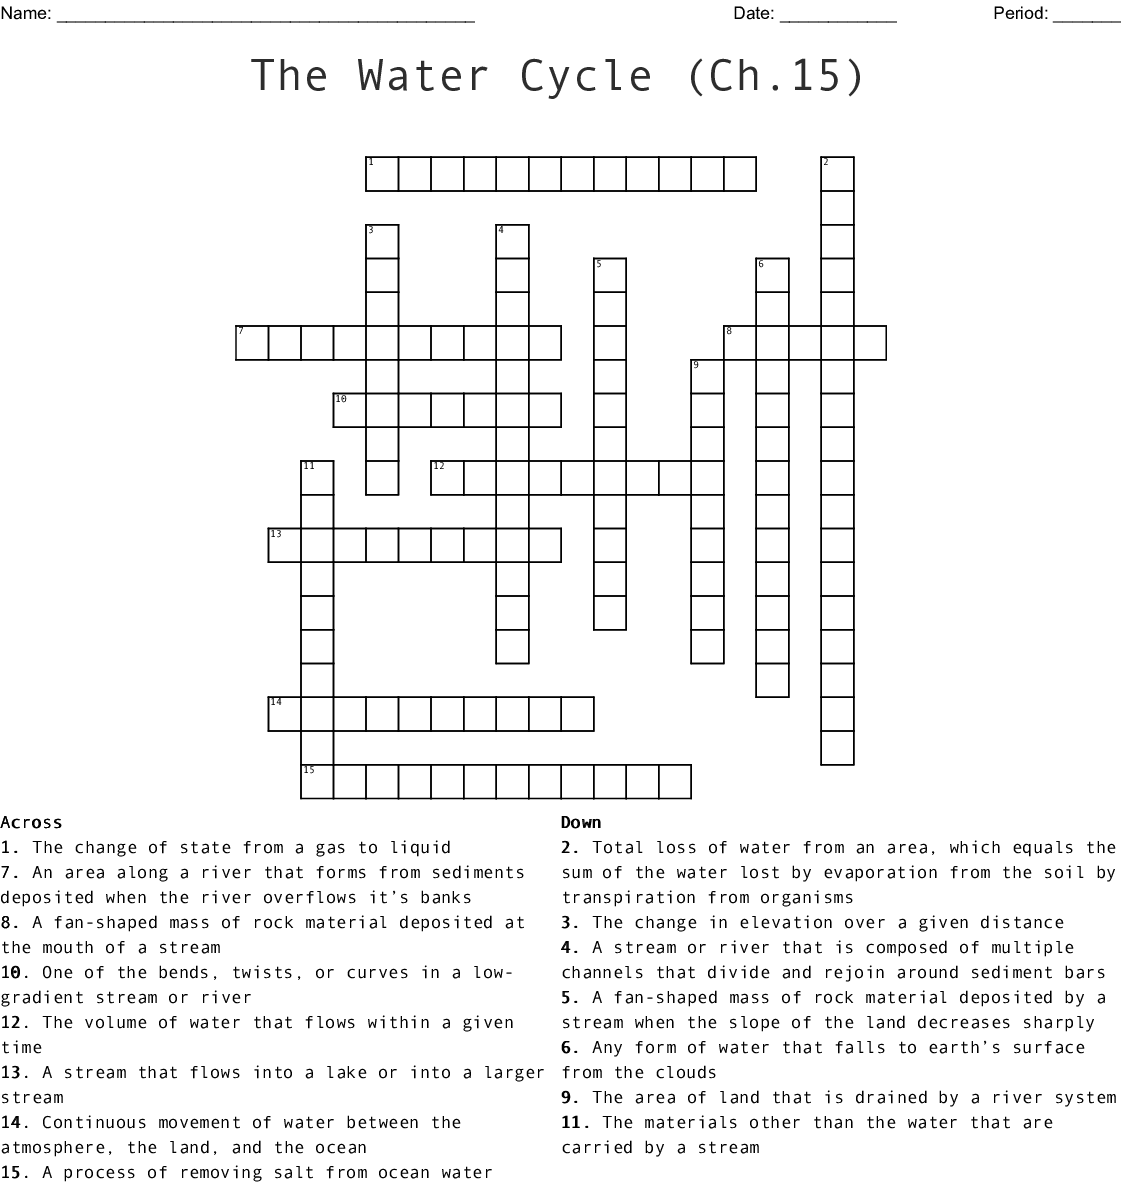 The Water Cycle Ch 15 Crossword